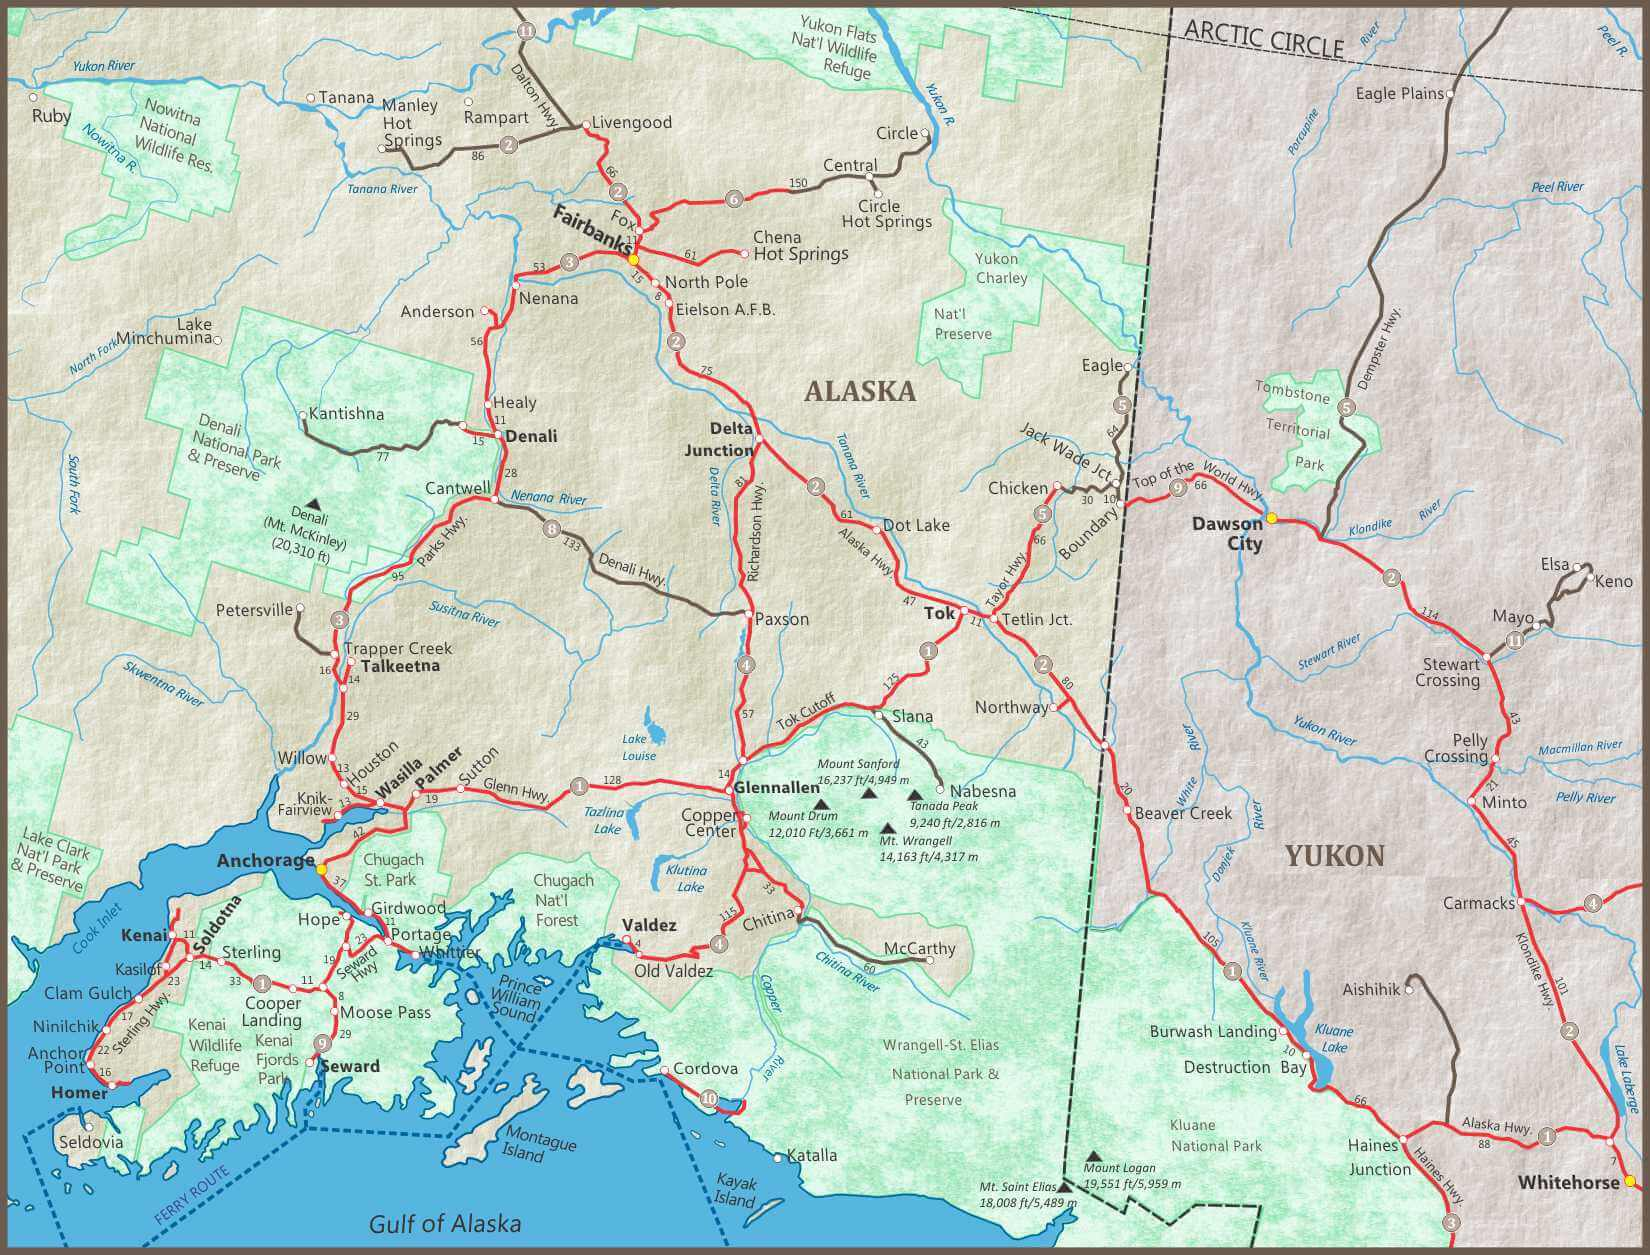 Alaska Maps of cities, towns and highways